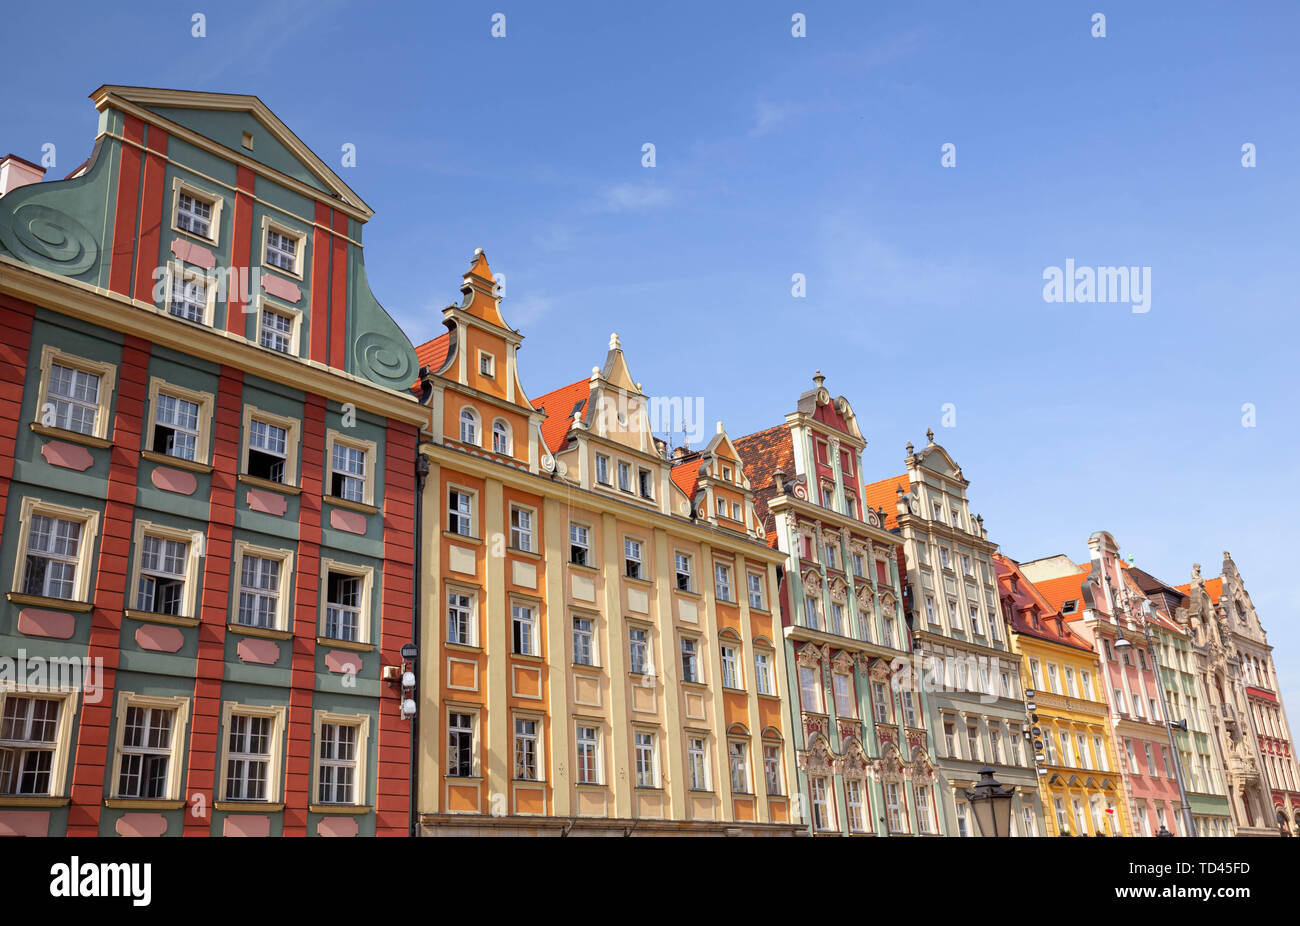 Wroclaw / Poland. Historical architecture on the main square Stock Photo